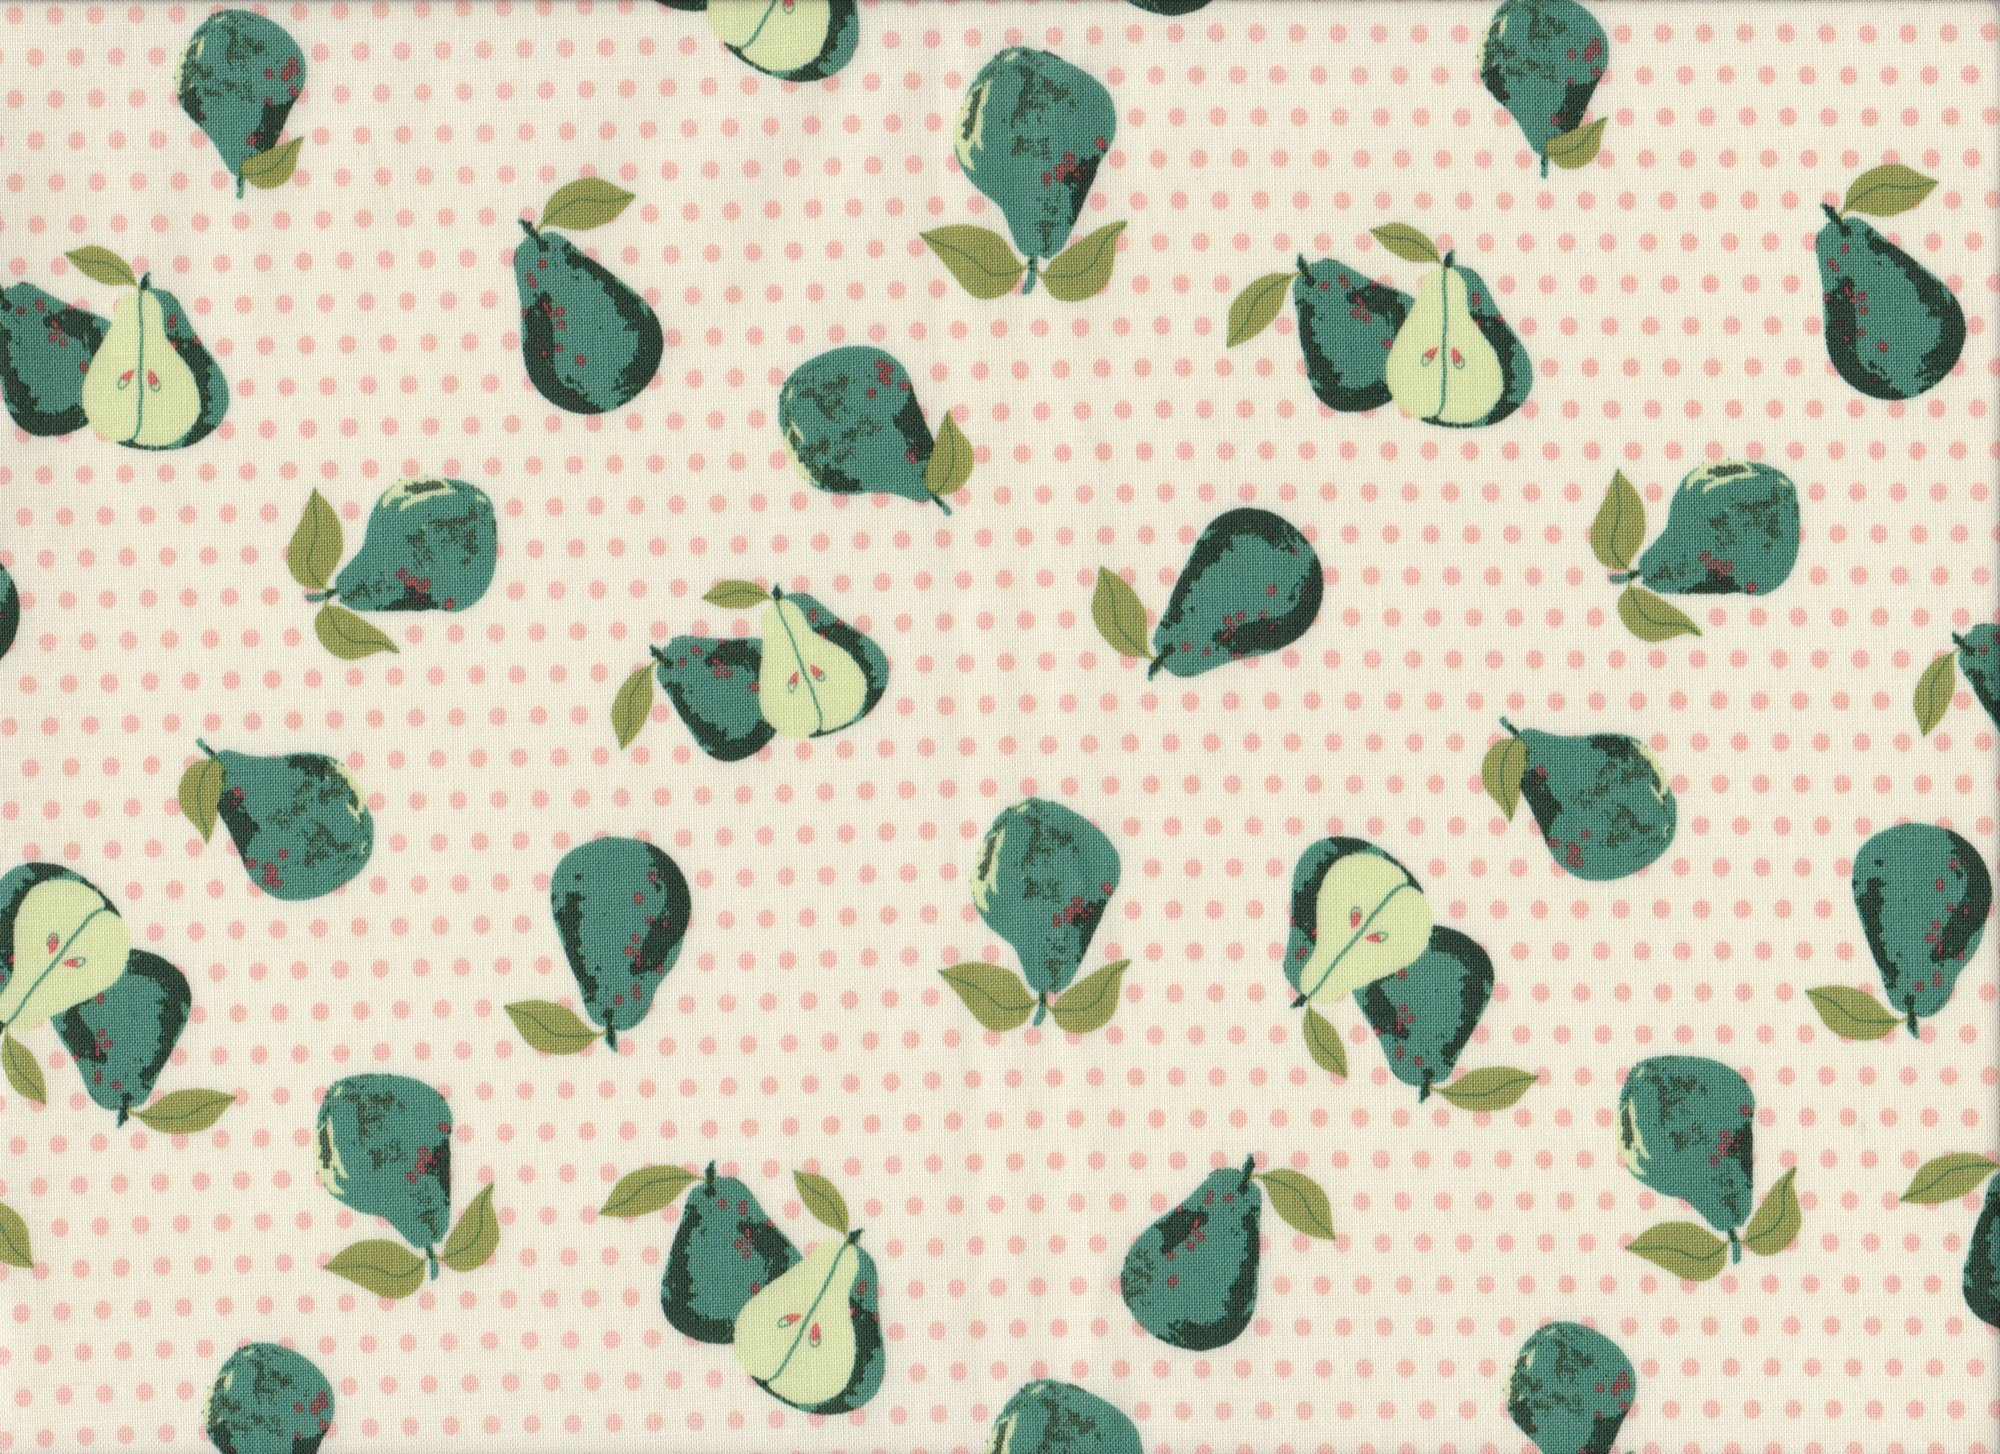 PROMO* FT-Boundless Pre-Cuts 82205 Pears (4 Yard Packages)